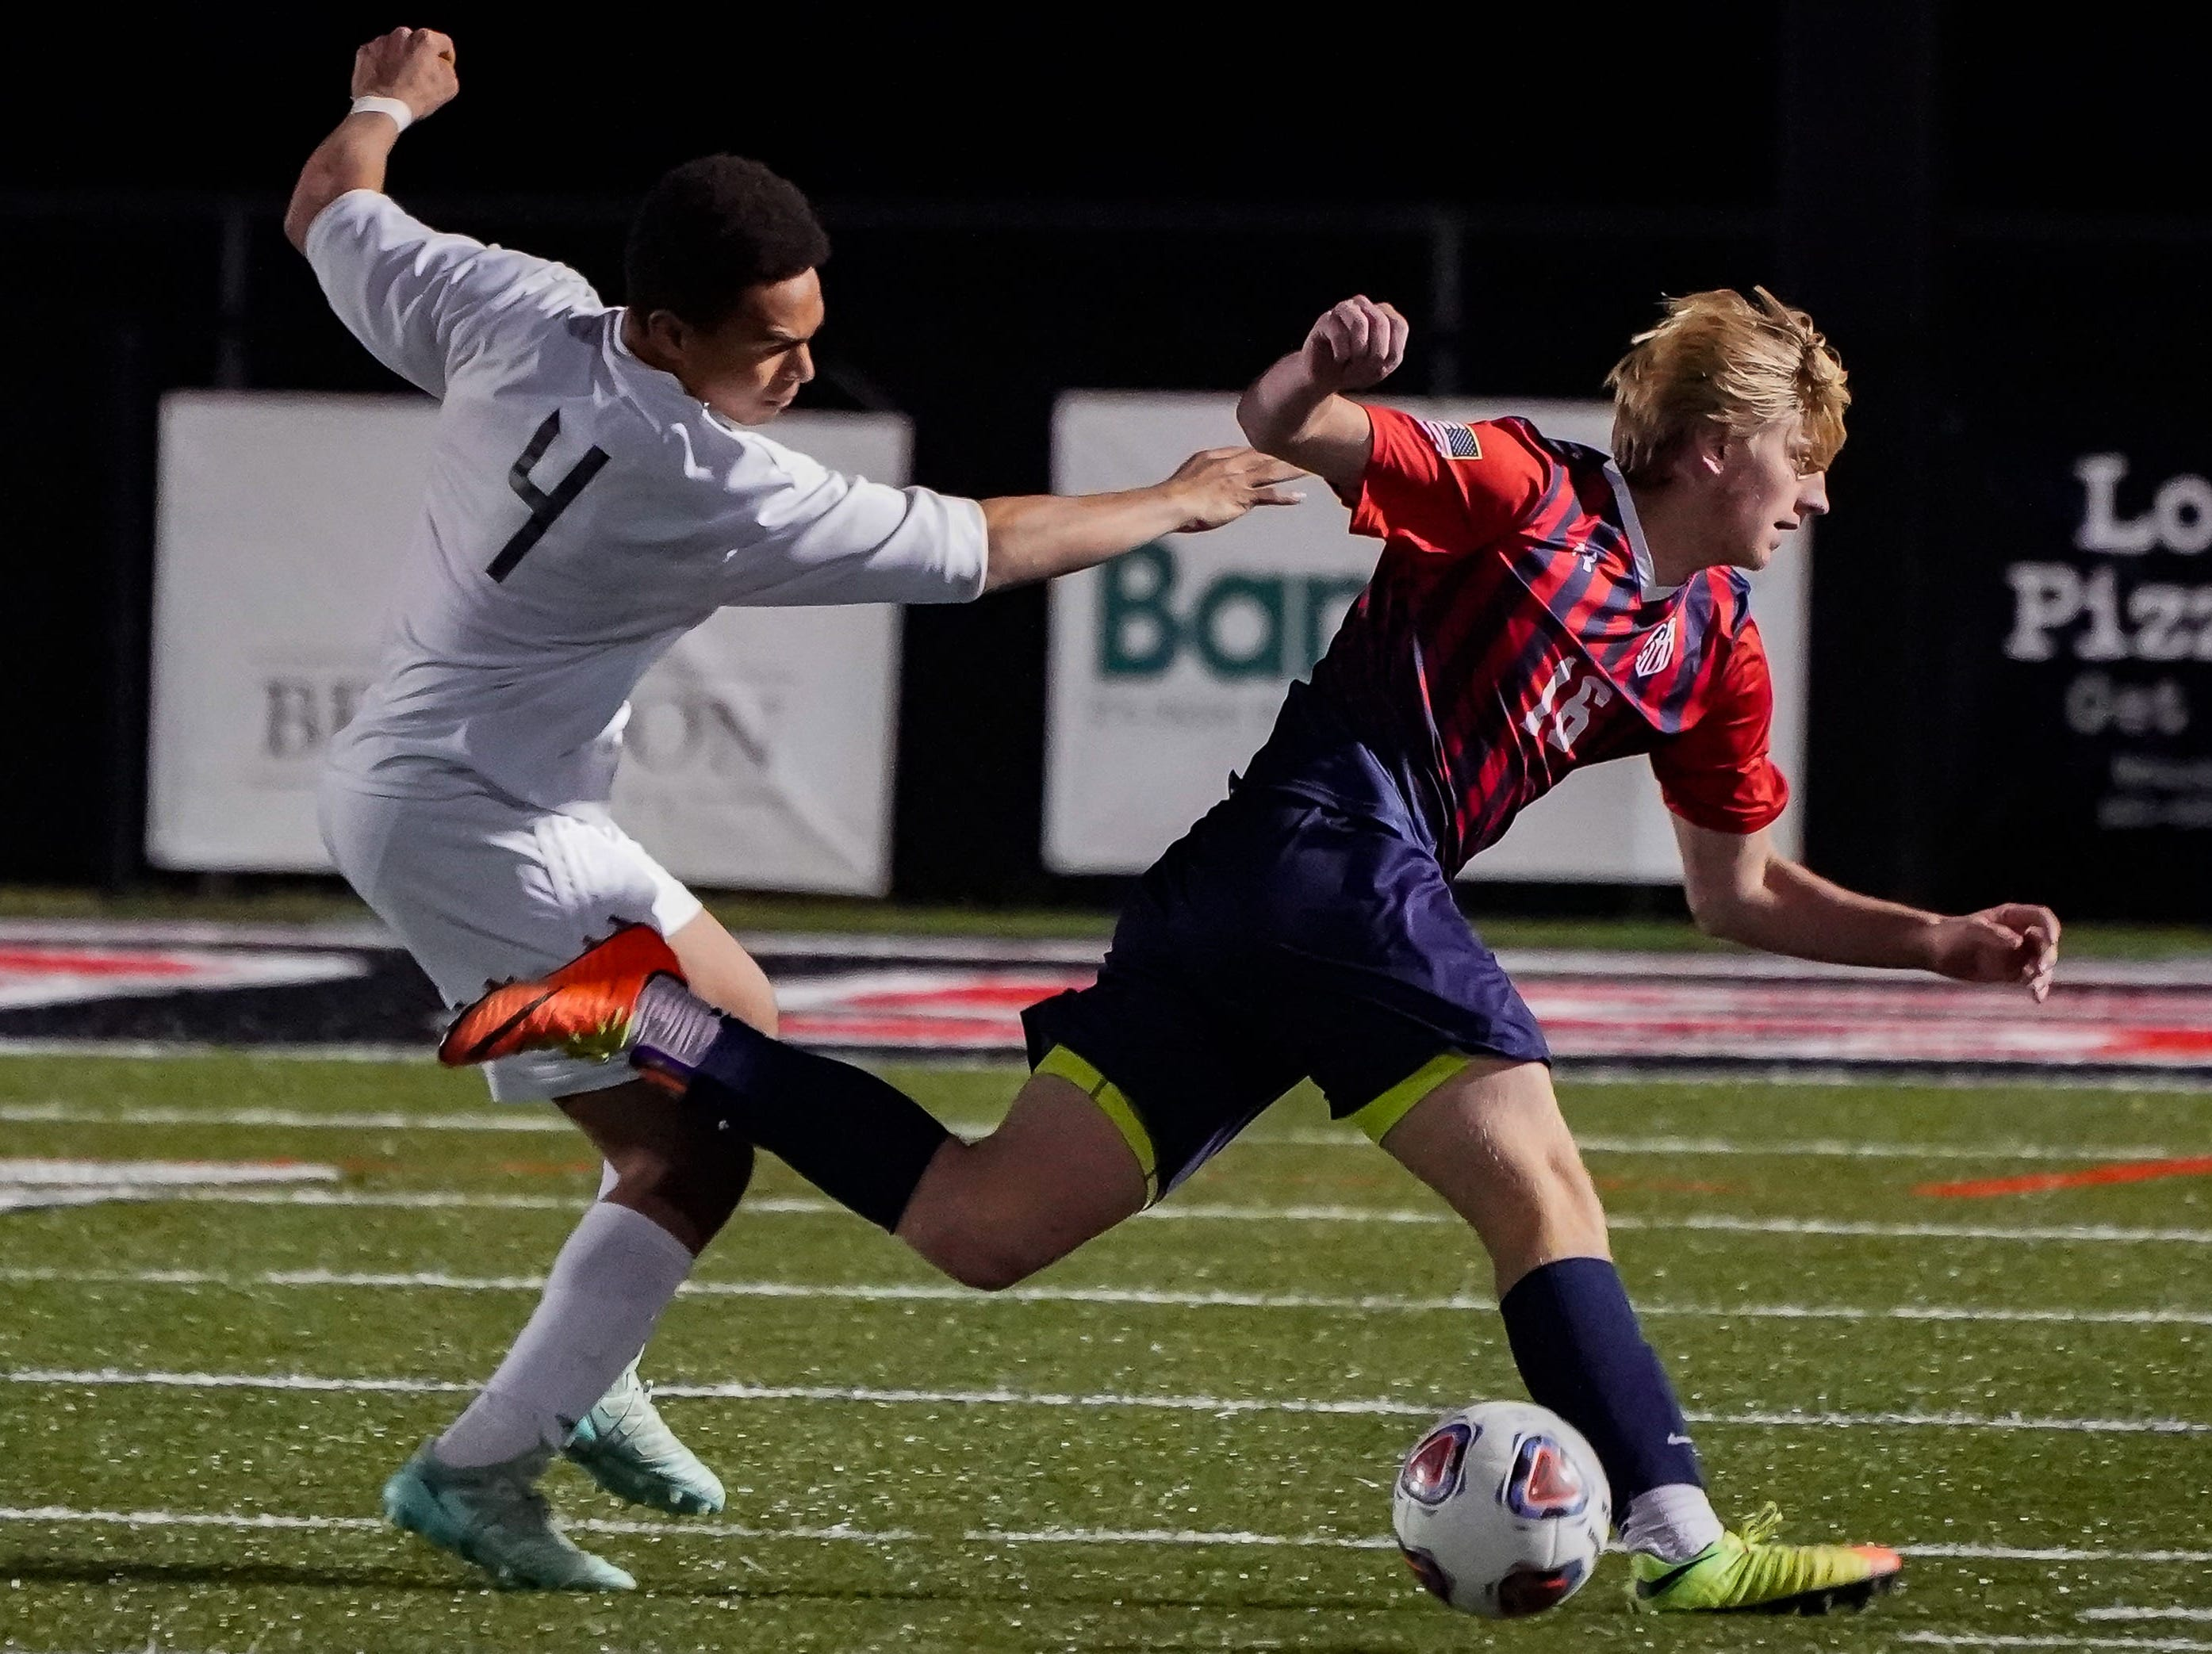 Lewisburg's Blaine Galbraith (16) is pushed from behind by Long Beach's Noah Shockley (4) during the MHSAA 5A Boys Soccer Championships held at Brandon High School in Brandon, MS, Saturday February 9, 2019.(Bob Smith-For The Clarion Ledger)